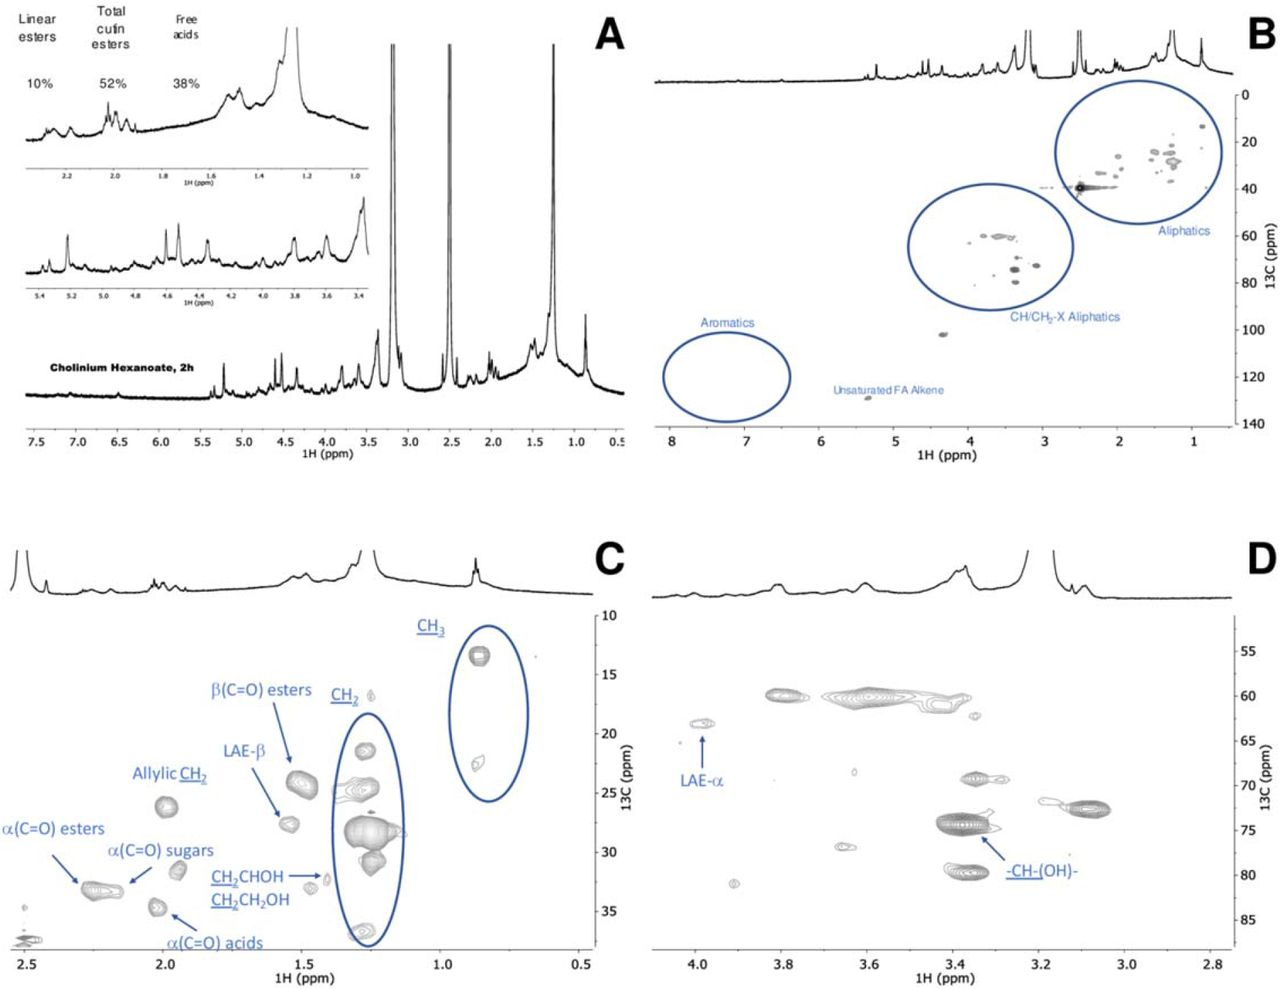 Wide-ranging NMR spectral characterisation of cutin isolated with cholinium hexanoate (2 h). The 1 H NMR, with inserts focussing the aliphatic and oxygenated aliphatics regions (A); and the HSQC spectrum: full (B) and regions corresponding to aliphatics (C) and CH/CH 2 -X aliphatics (D) of the purified cutin. Some correlations (unlabelled) are uncertain or unidentified.